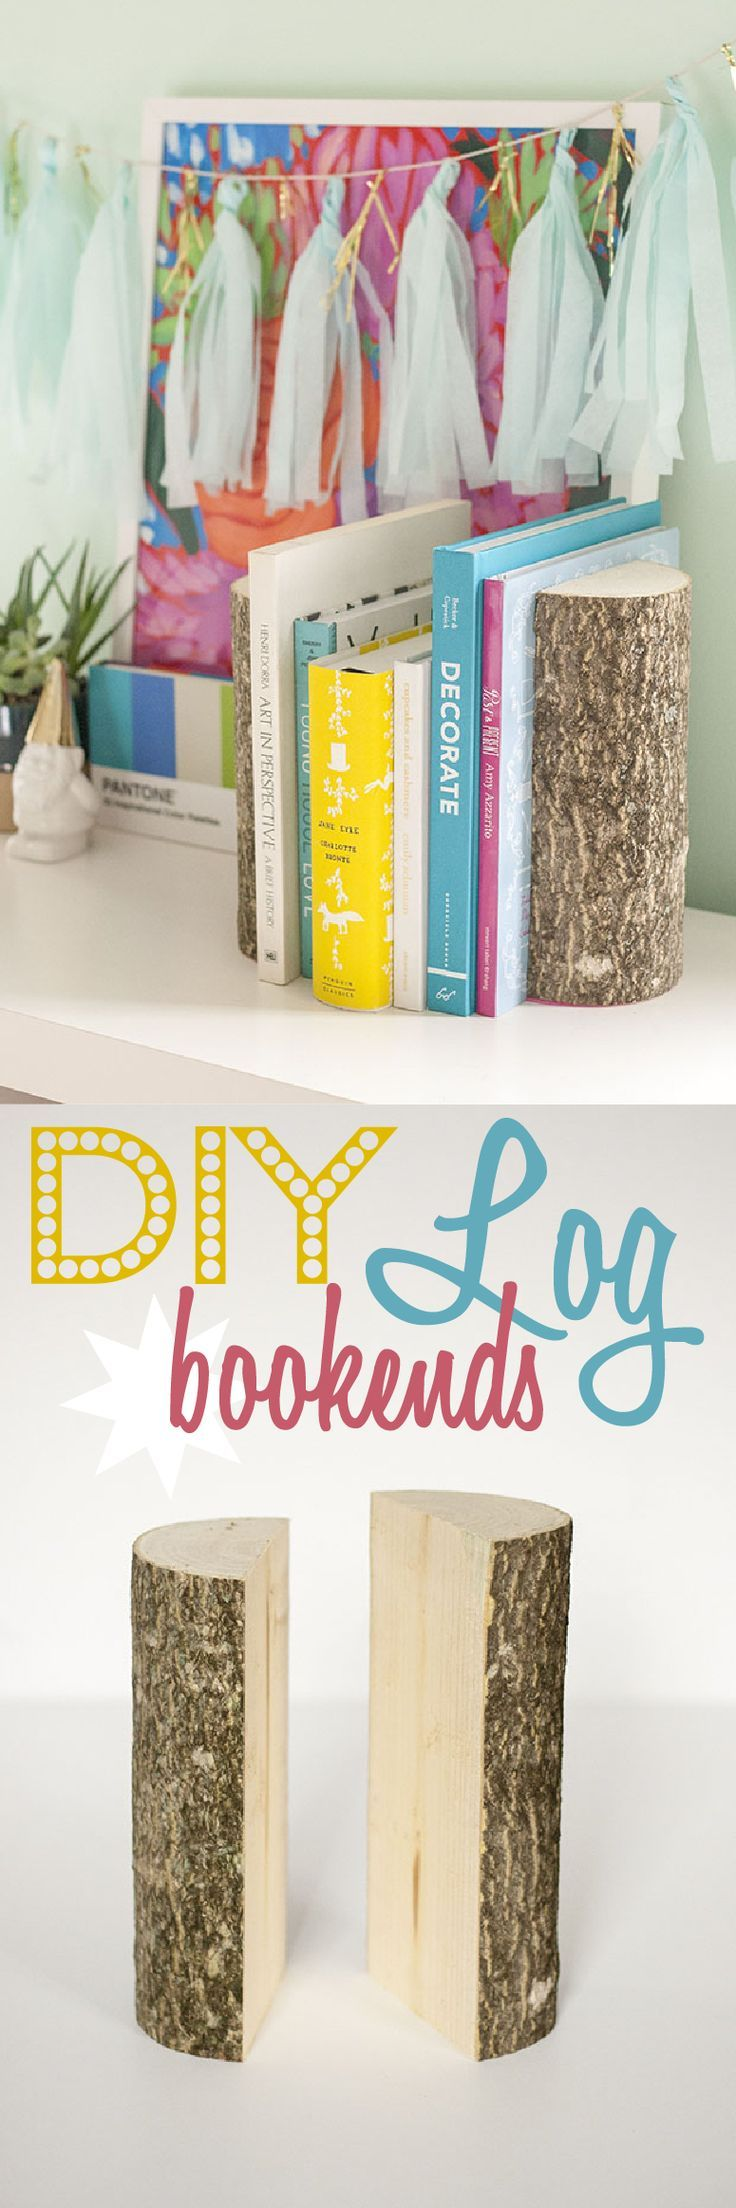 How have we not done this yet! Using log halves as bookends. Add some felt at the bottom so they are easy to move and don't scratch your shelving. Adorable and functional! www.ehow.com/...